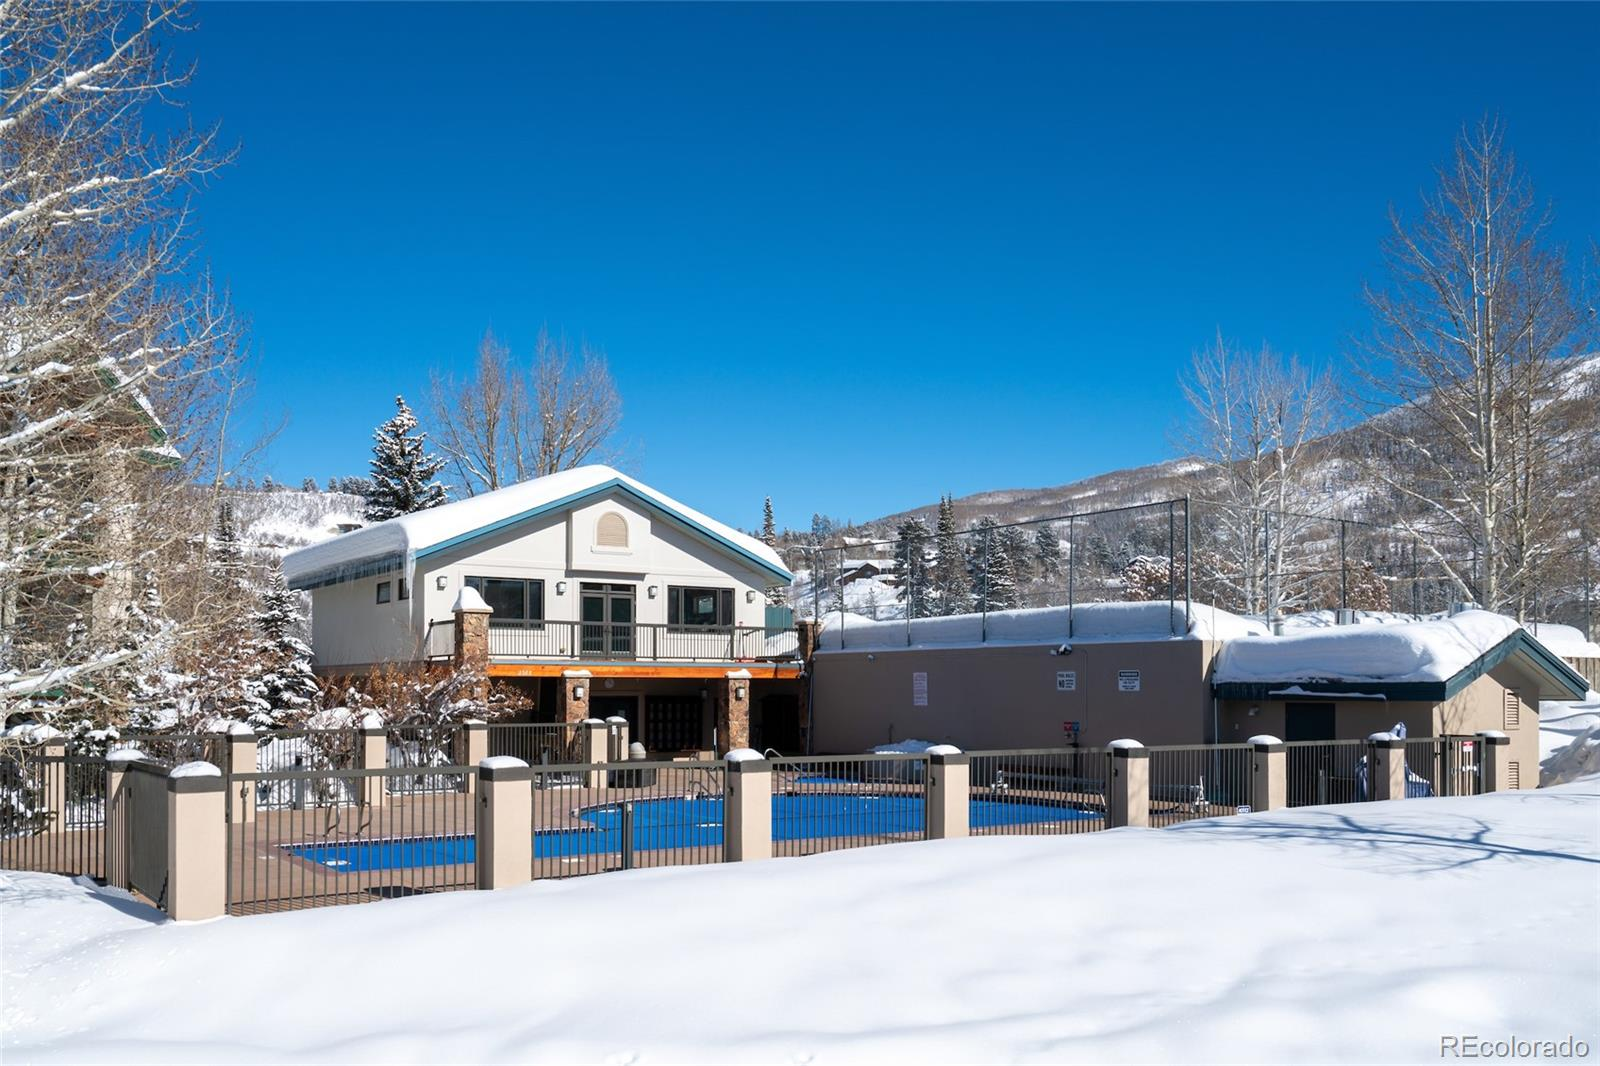 MLS# 8046163 - 3 - 2355 Storm Meadows Dr 311  #A-311, Steamboat Springs, CO 80487